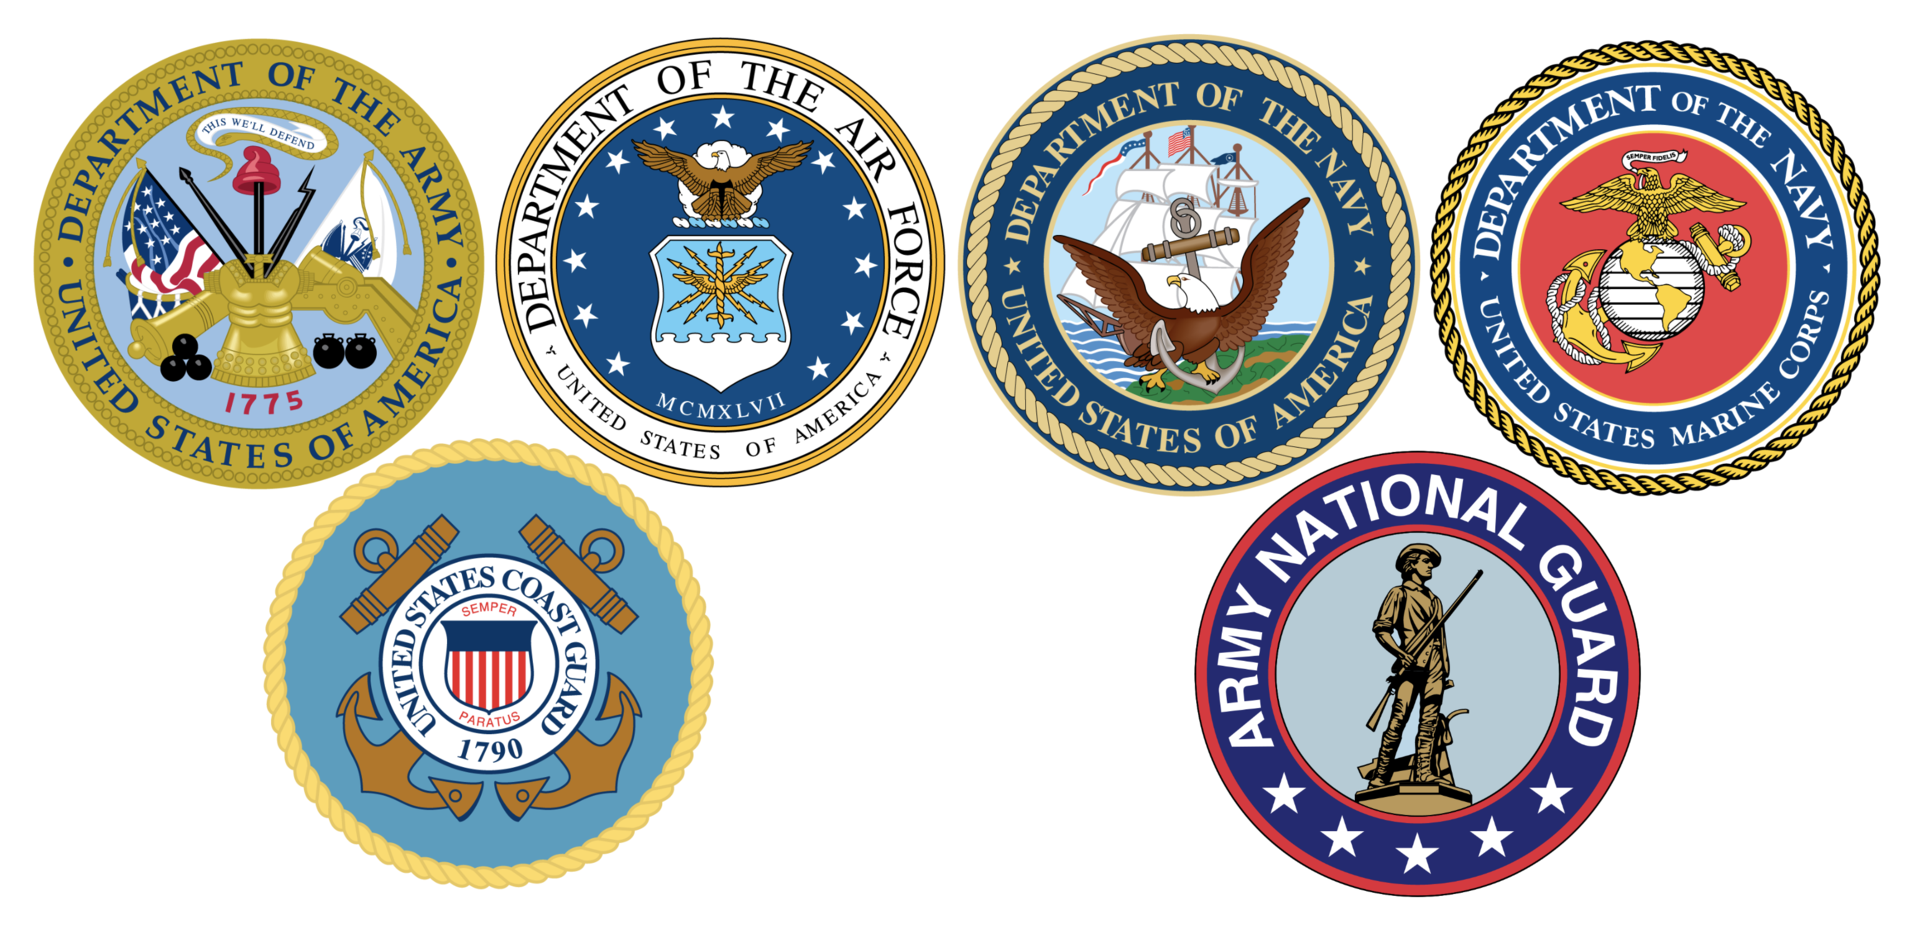 Image of the official seals of all branches of the U.S. Armed Forces and National Guard.